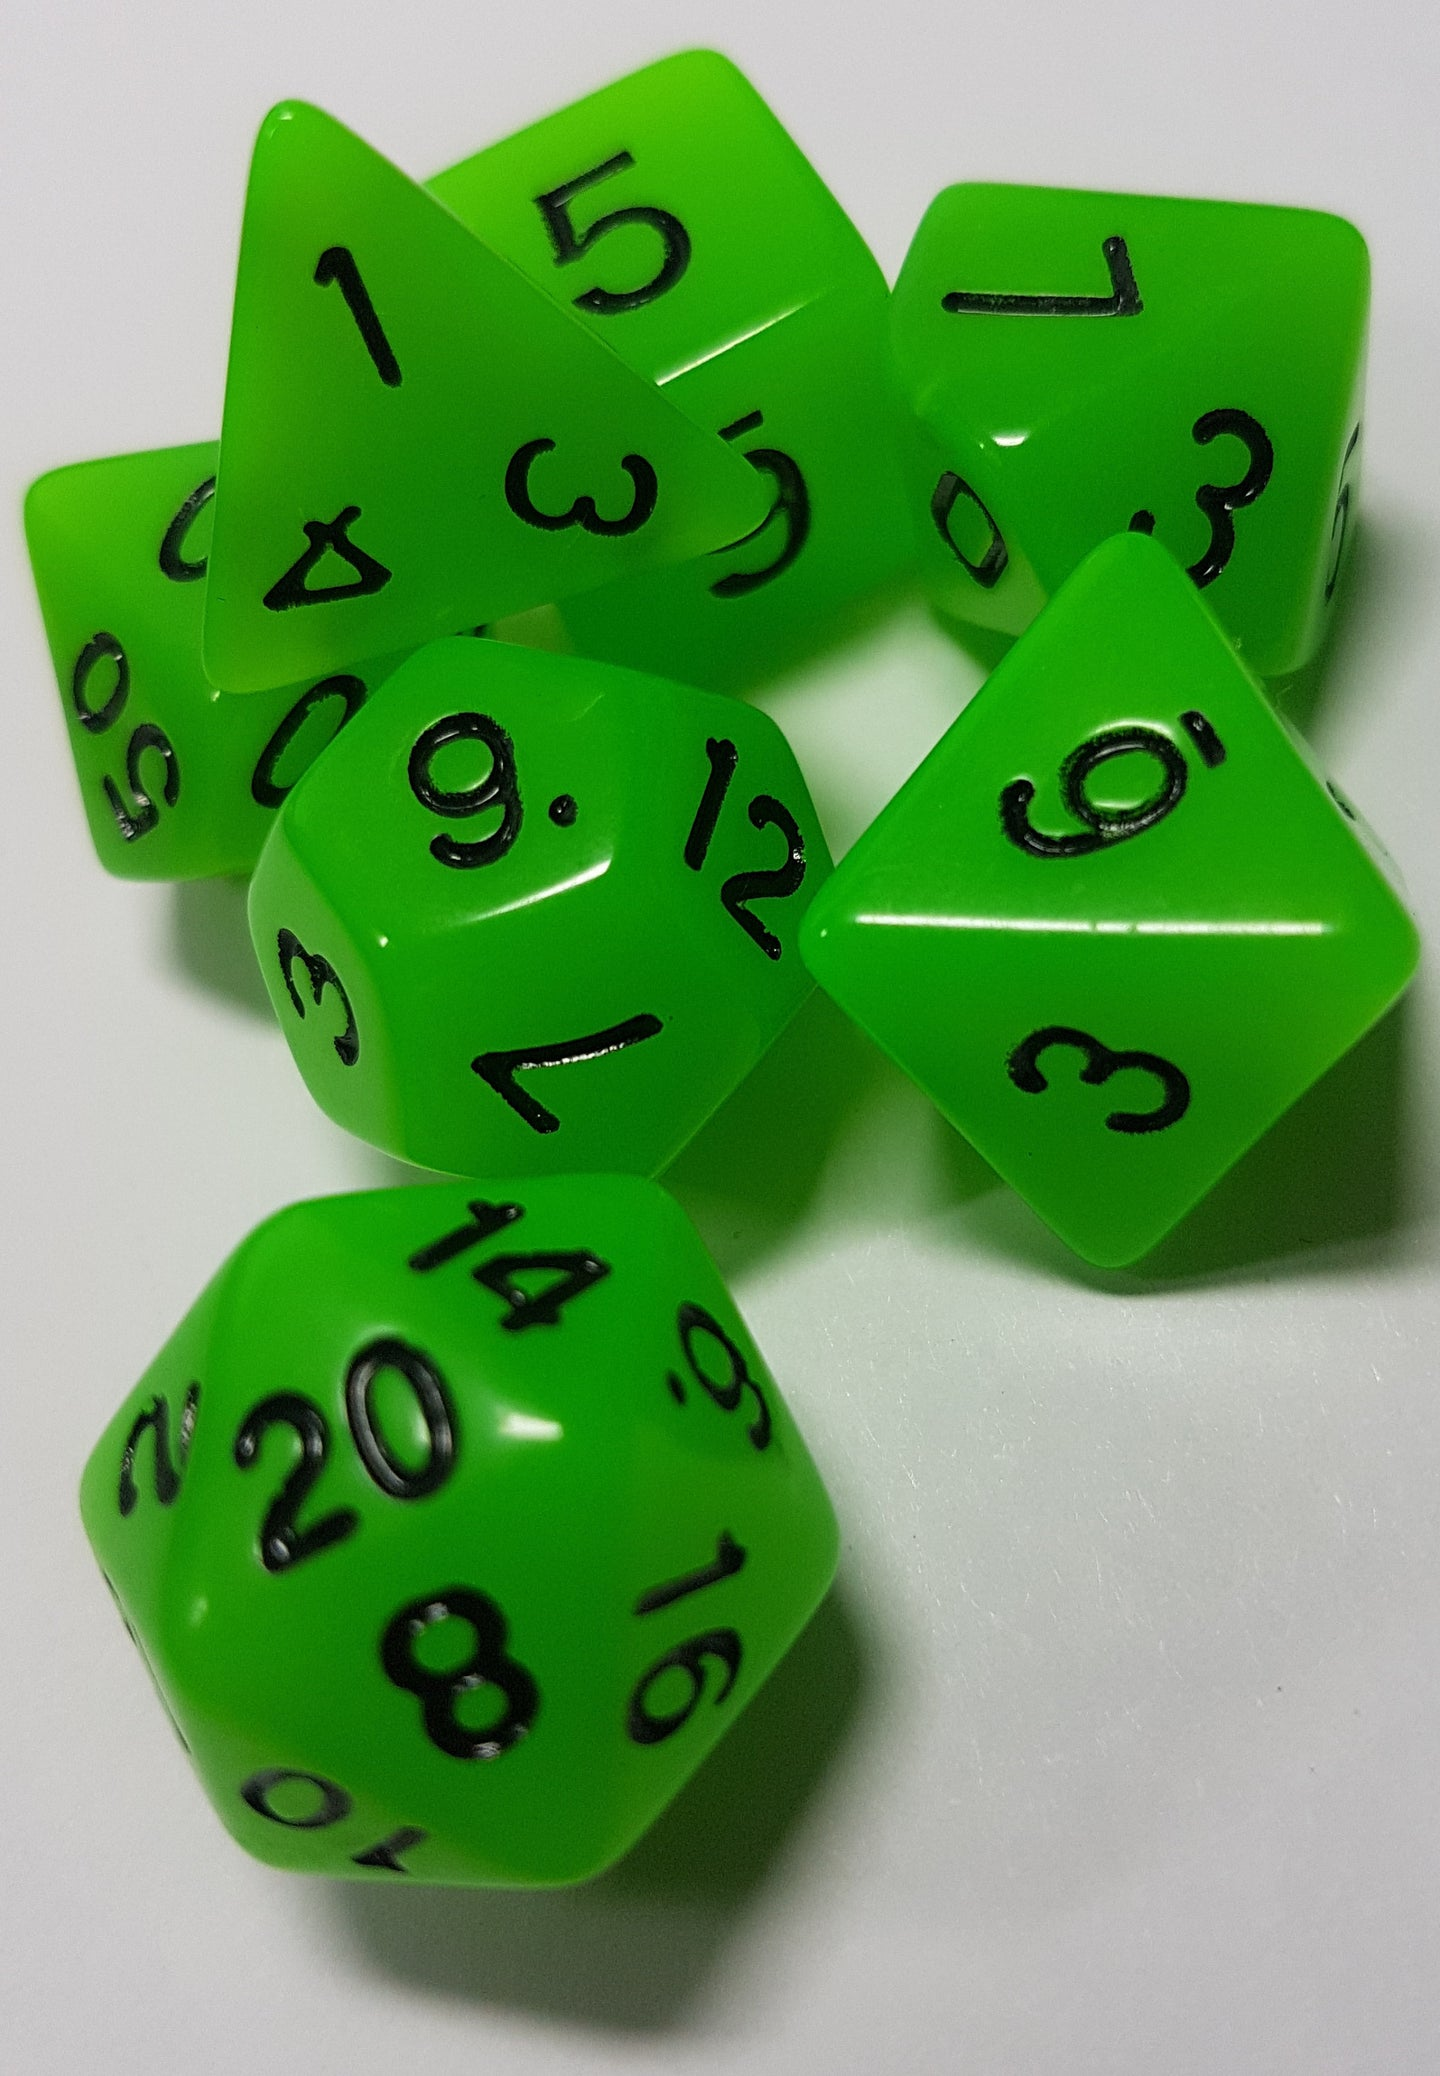 Green Radiant Glow In The Dark 7pc Dice Set